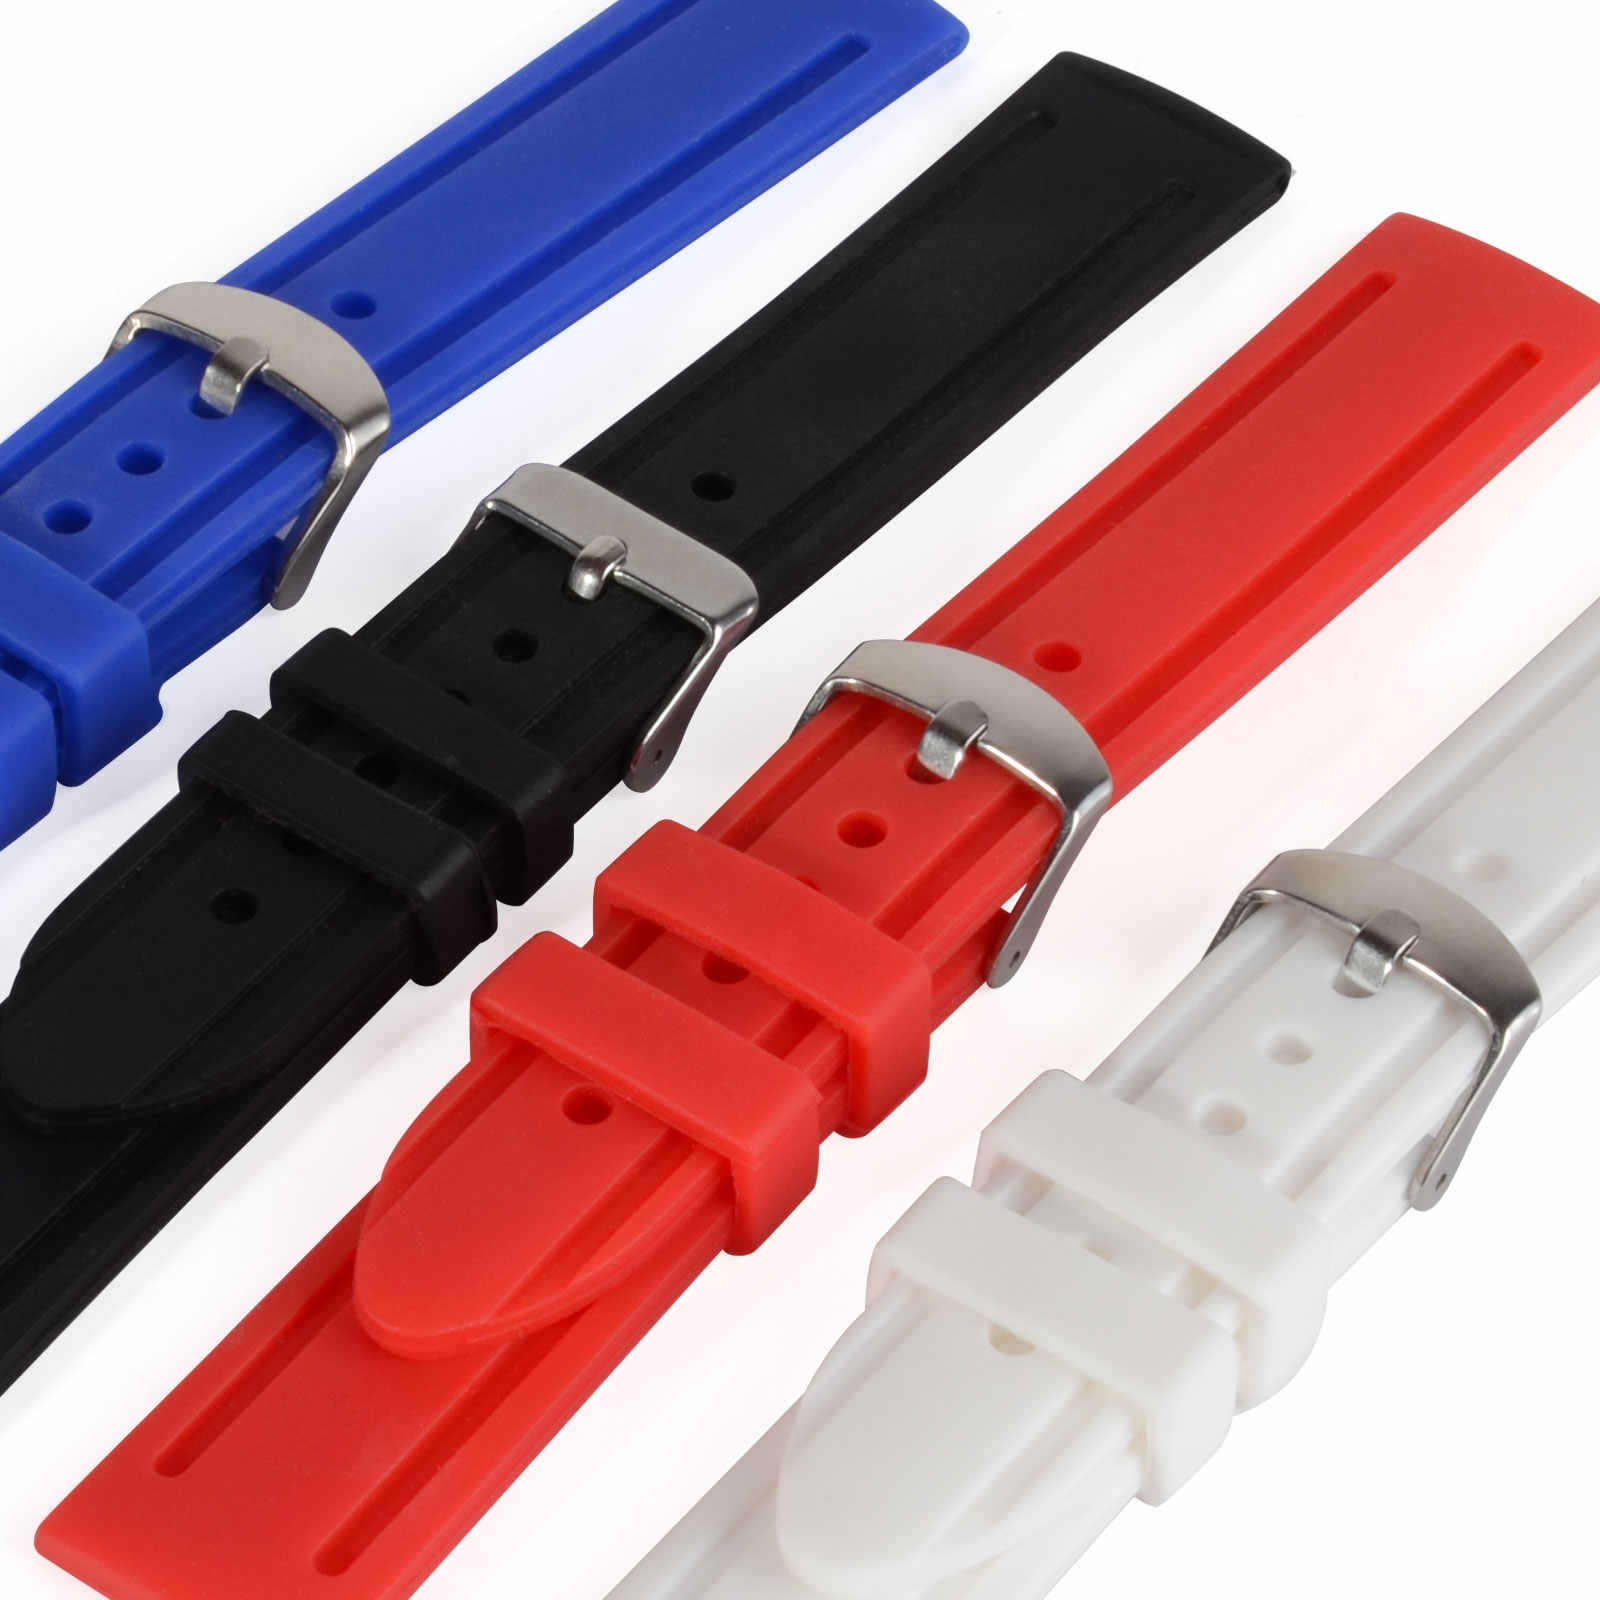 Silicone Sports Band Rubber Strap Bands Men Women Watchband Replace Electronic Wristwatch Band Accessories 20mm 22mm 24mm Width